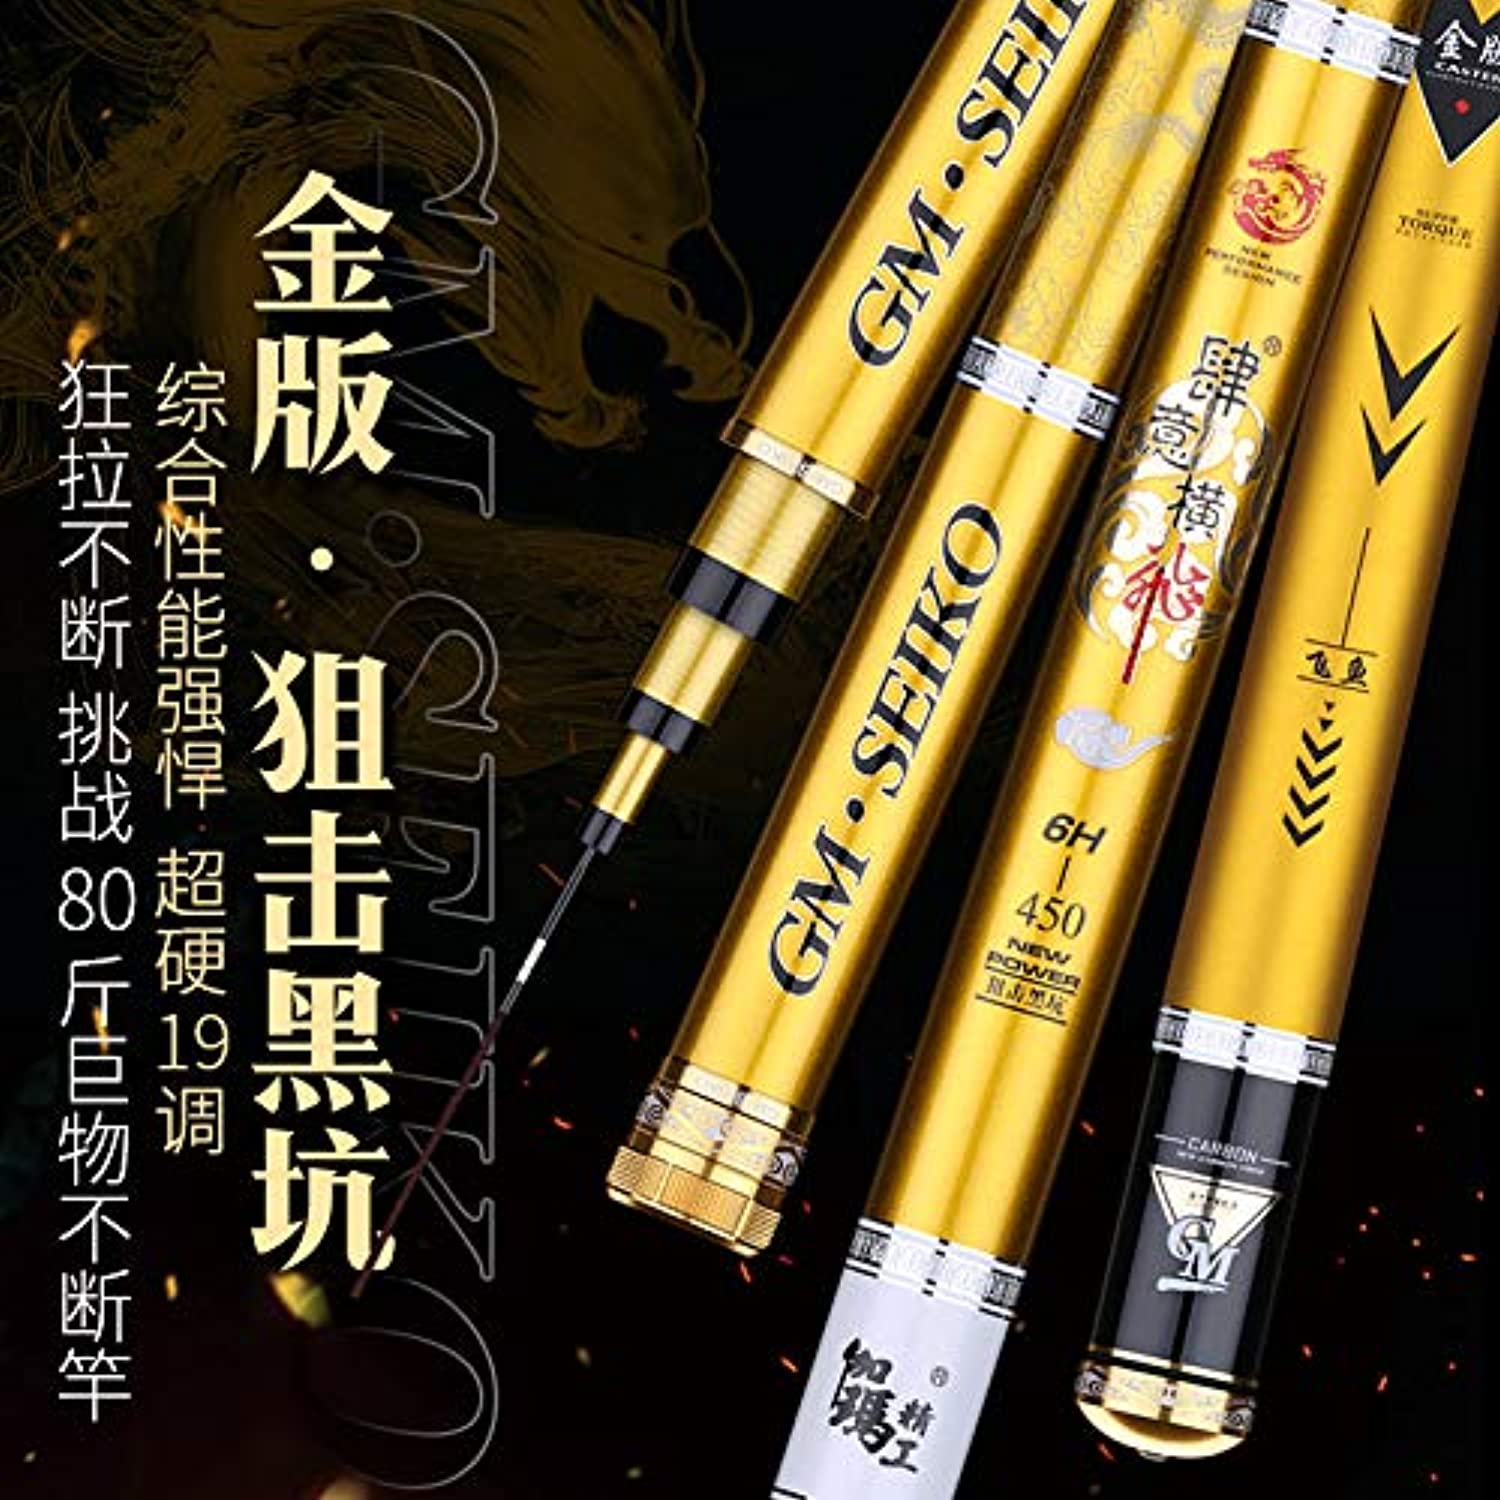 Gamma Seiko Fish Rod gold Version of The Arrogant Flying 6H8H19 Tone Black Pit Flying Fish Super Light Super Hard Fishing Rod Handcuffs